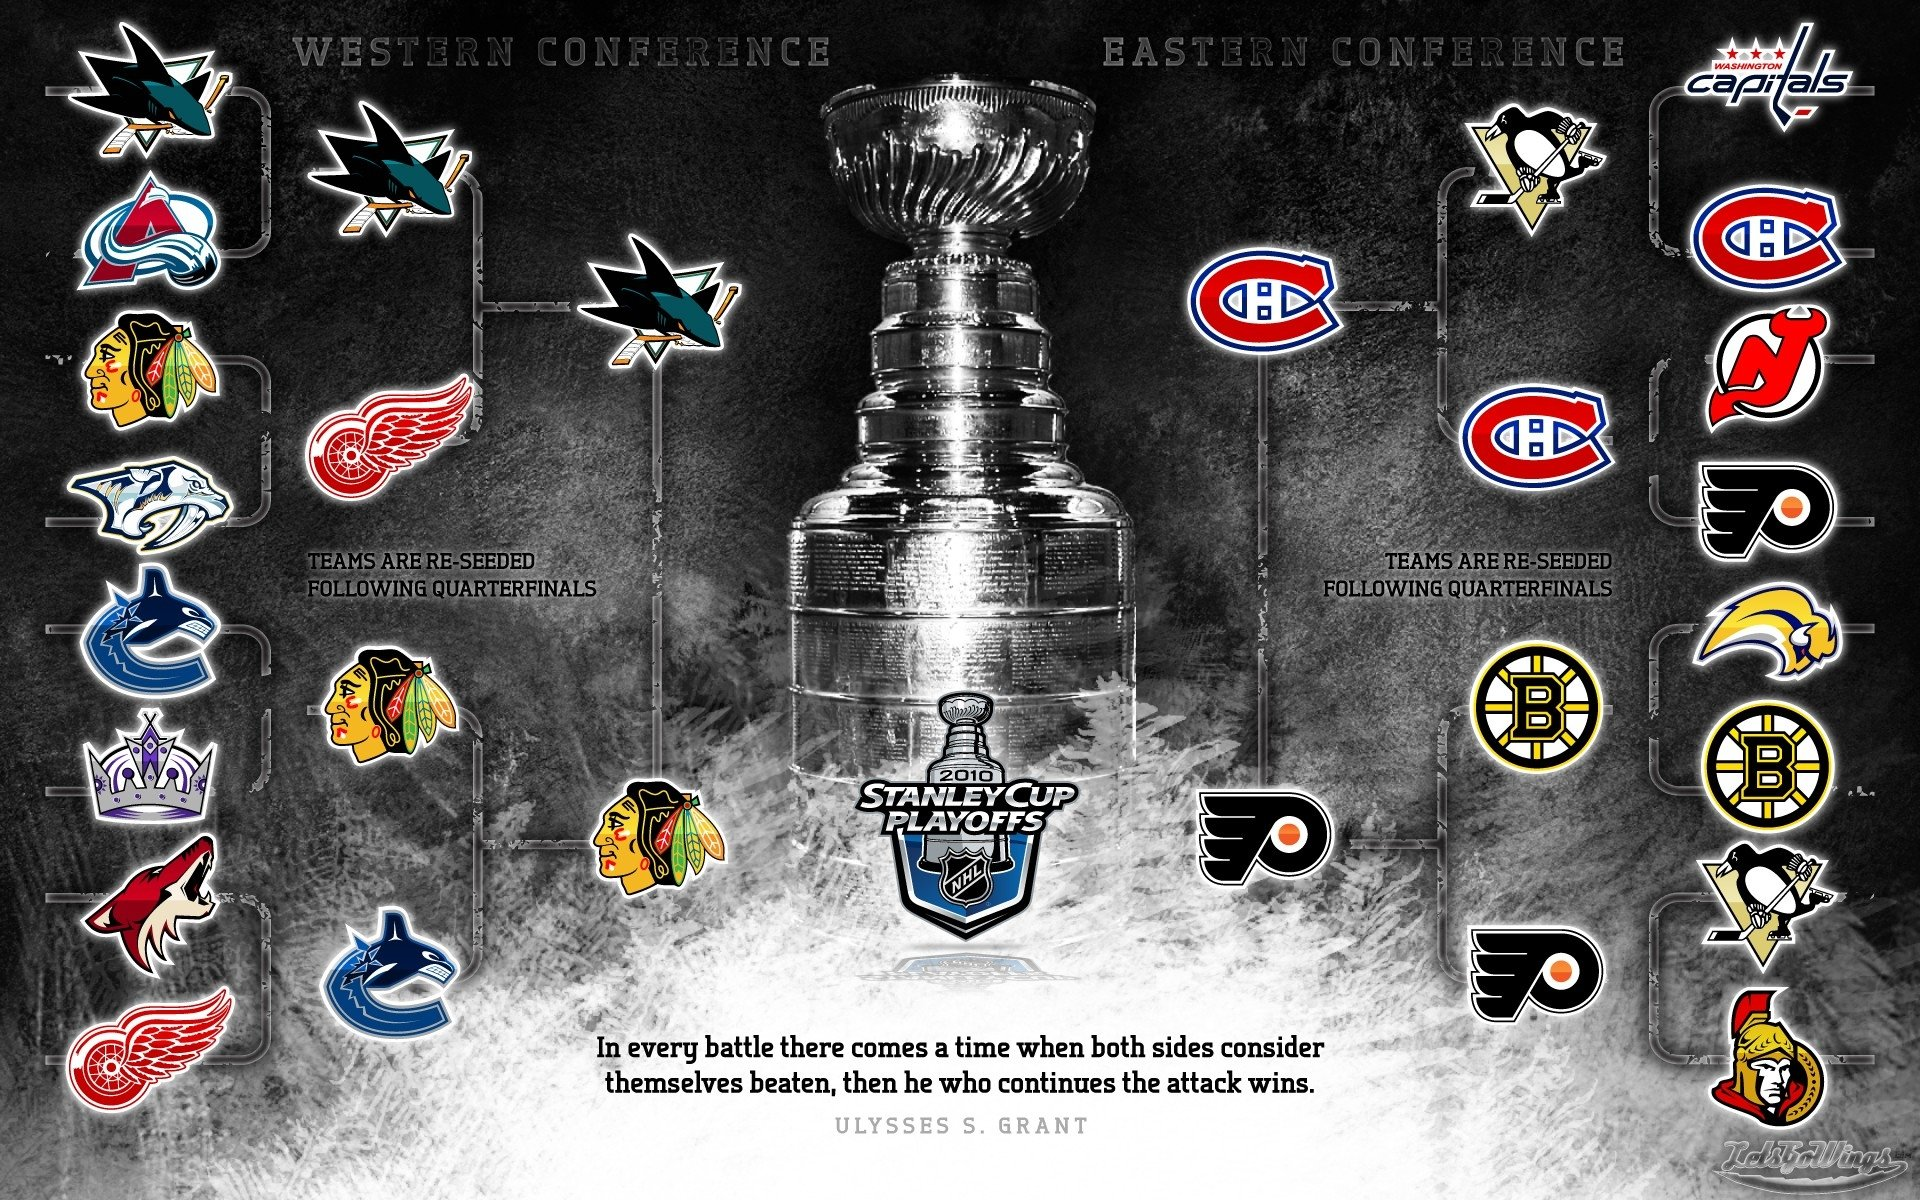 594 hockey hd wallpapers background images wallpaper abyss hd wallpaper background image id316274 1920x1200 sports hockey sciox Choice Image